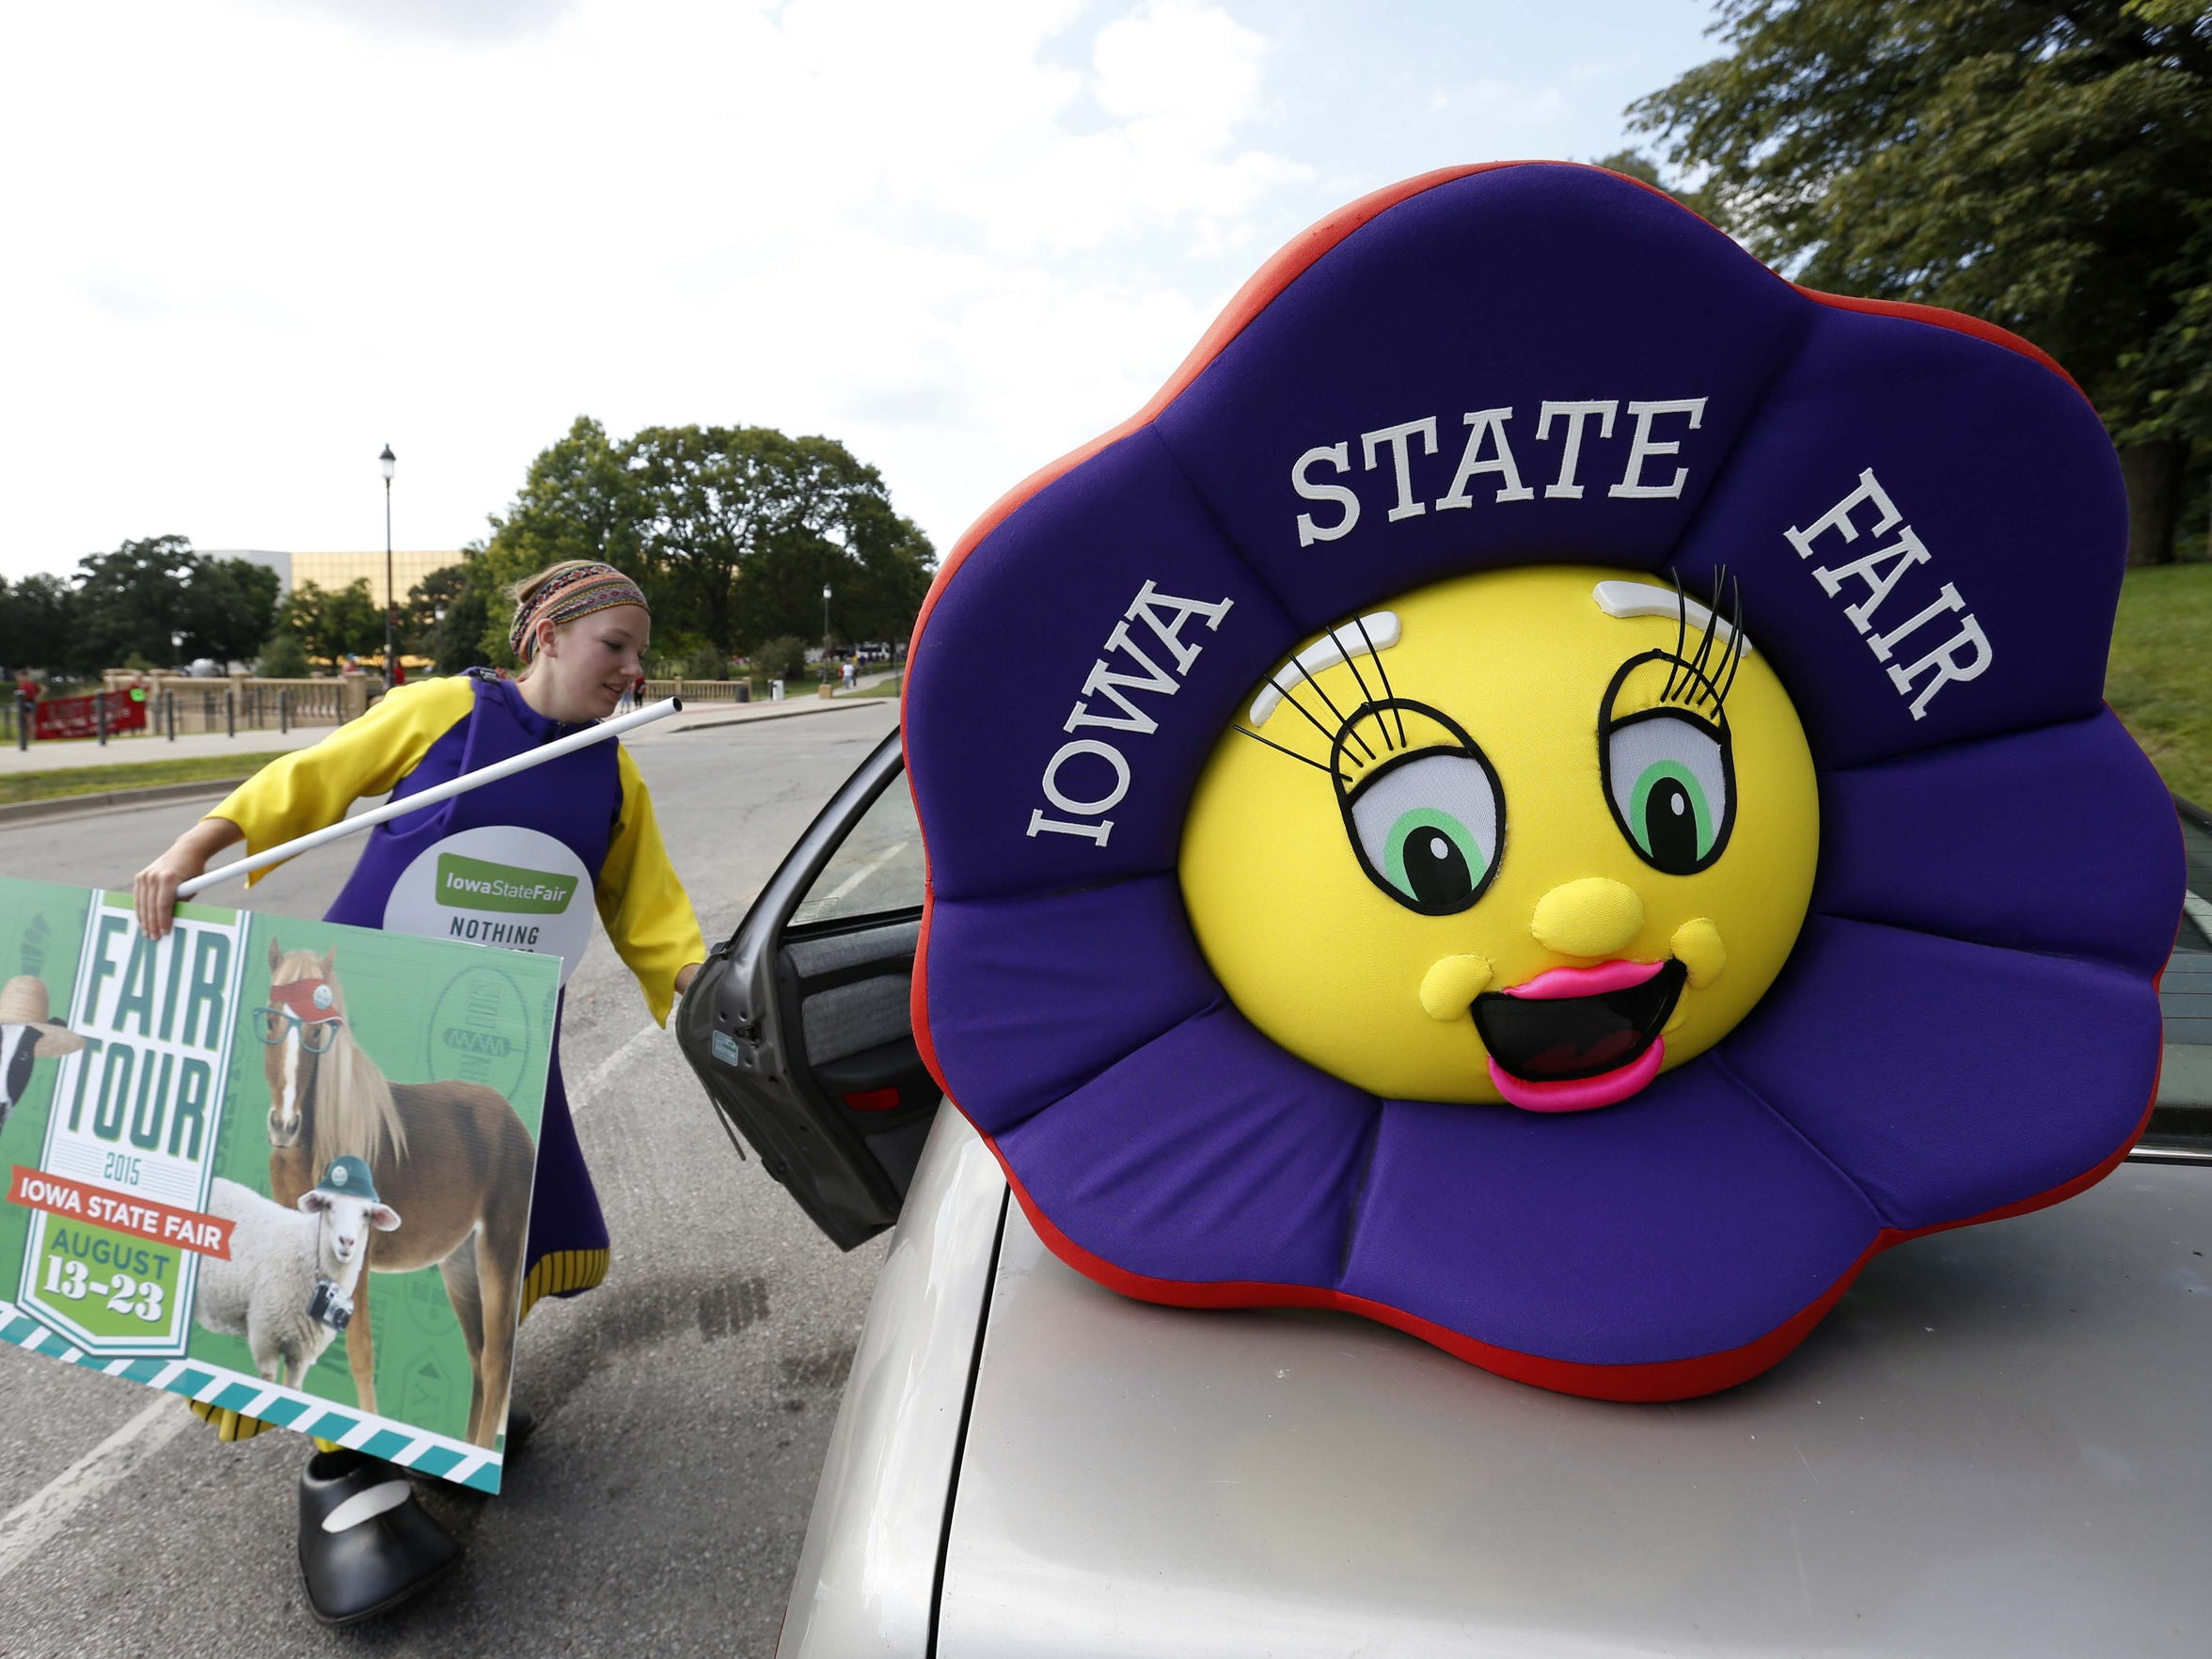 Allison Edwards pulls the Iowa State Fair banner out of her car as she puts on the purple ribbon mascot costume on Wednesday, Aug. 12, 2015 before the State Fair parade along Grand Avenue in Des Moines.